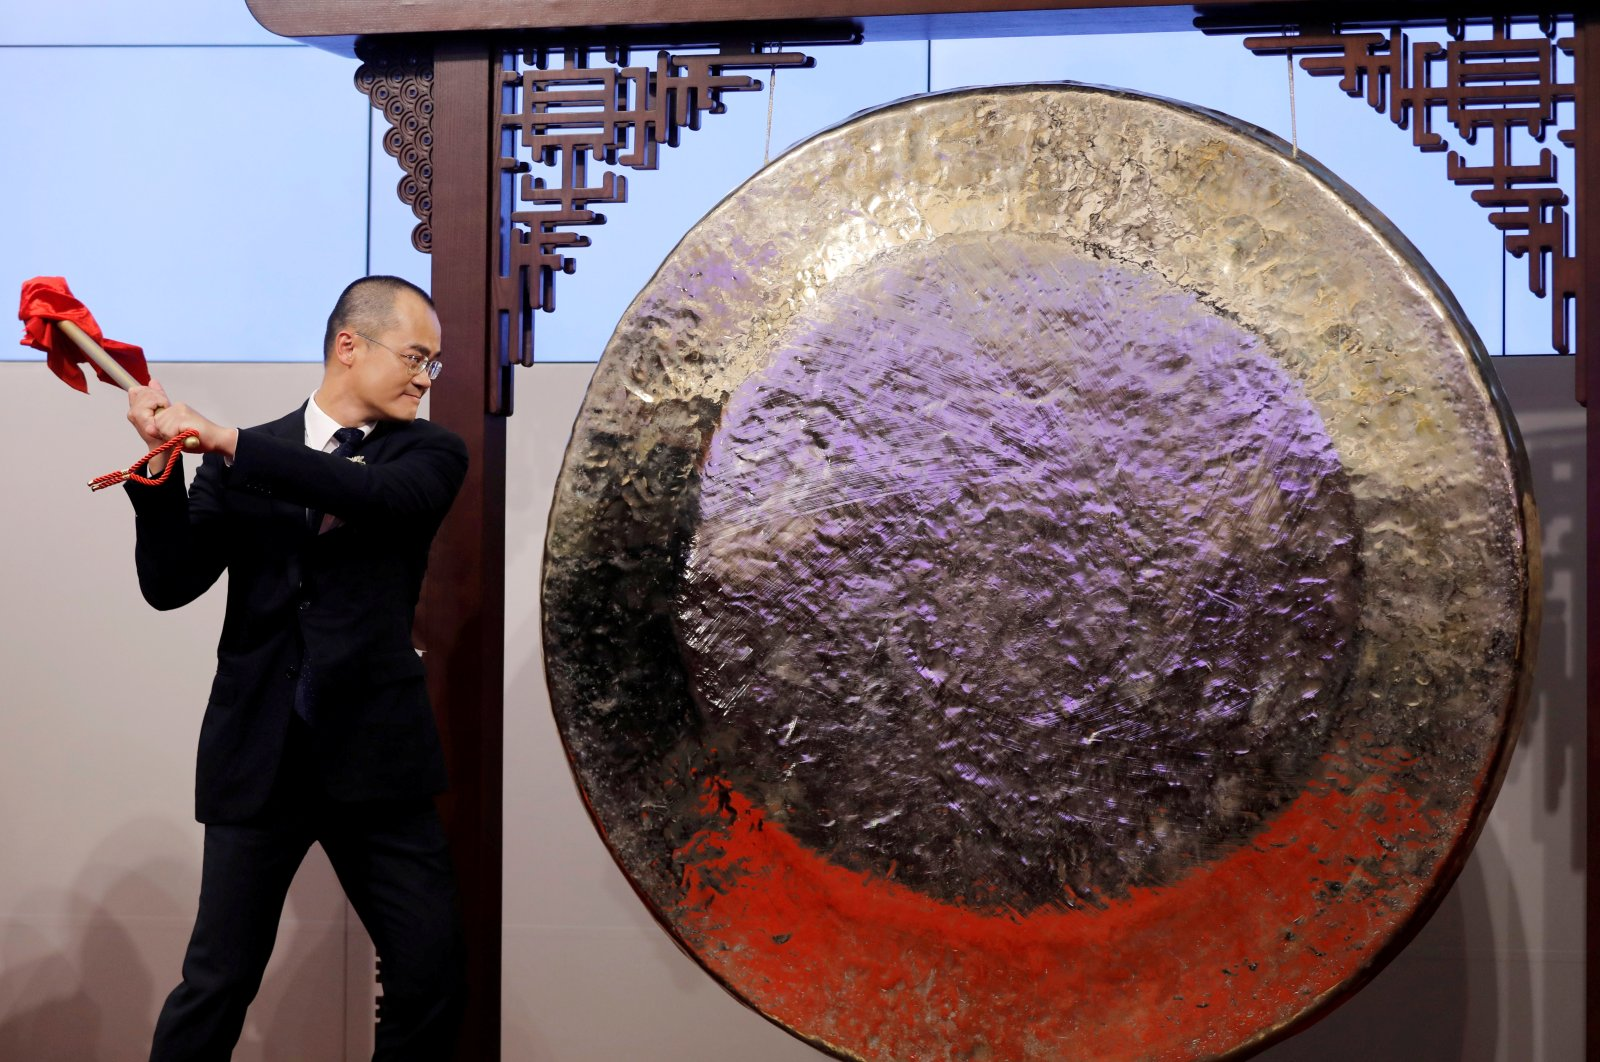 Wang Xing, co-founder, chairperson and chief executive officer of China's Meituan Dianping, hits the gong during the debut of the company at the Hong Kong Exchanges in Hong Kong, China, Sept. 20, 2018. (Reuters Photo)